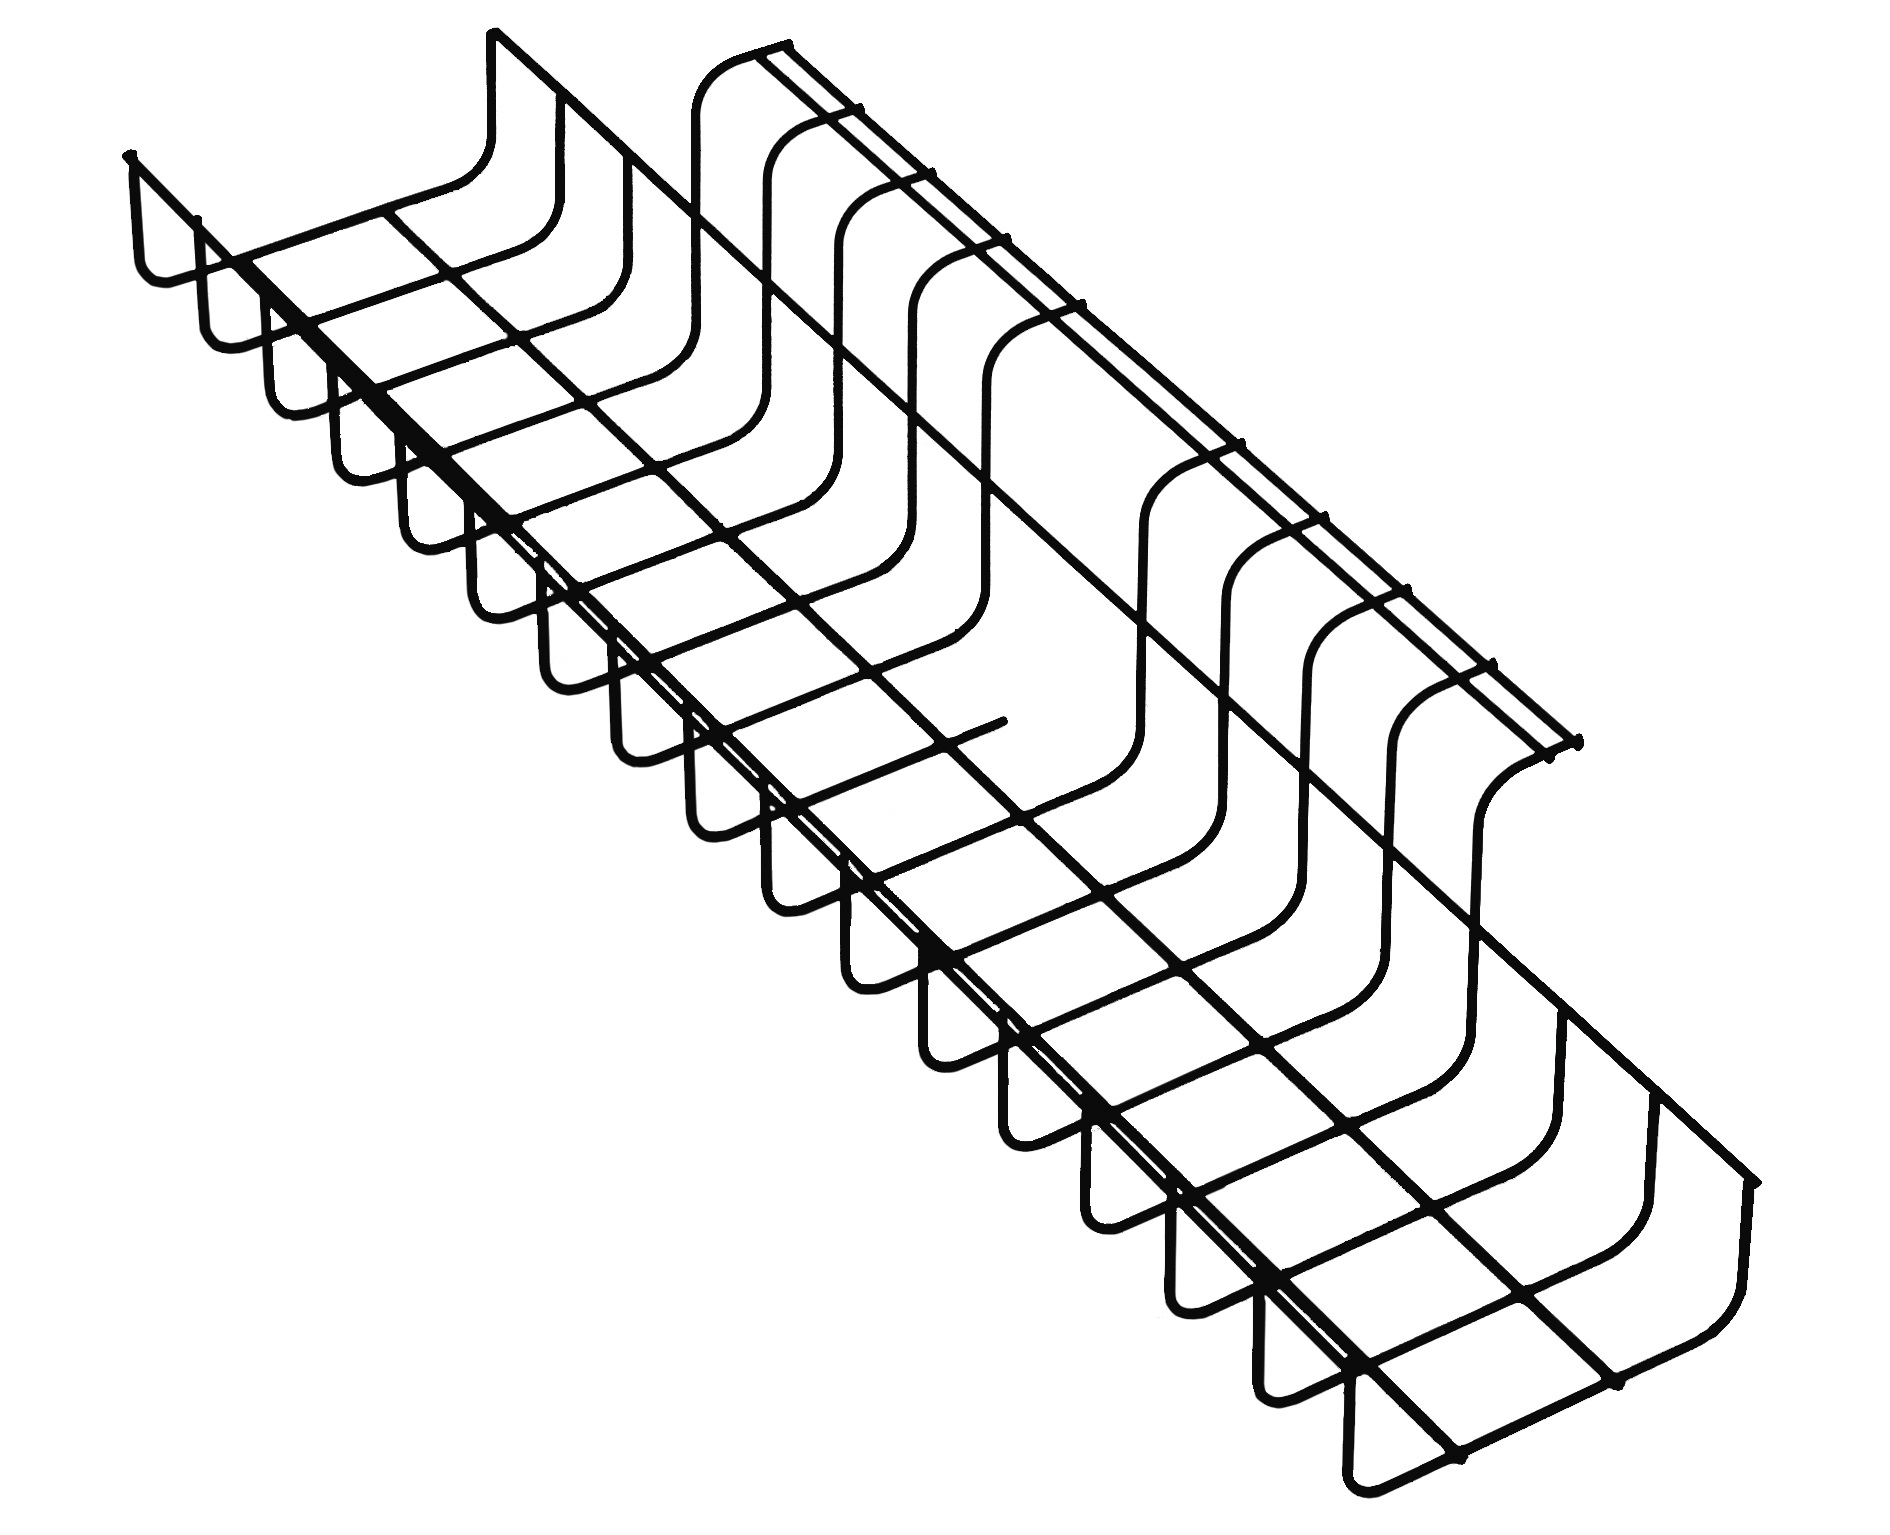 Cable Trays From Bpf